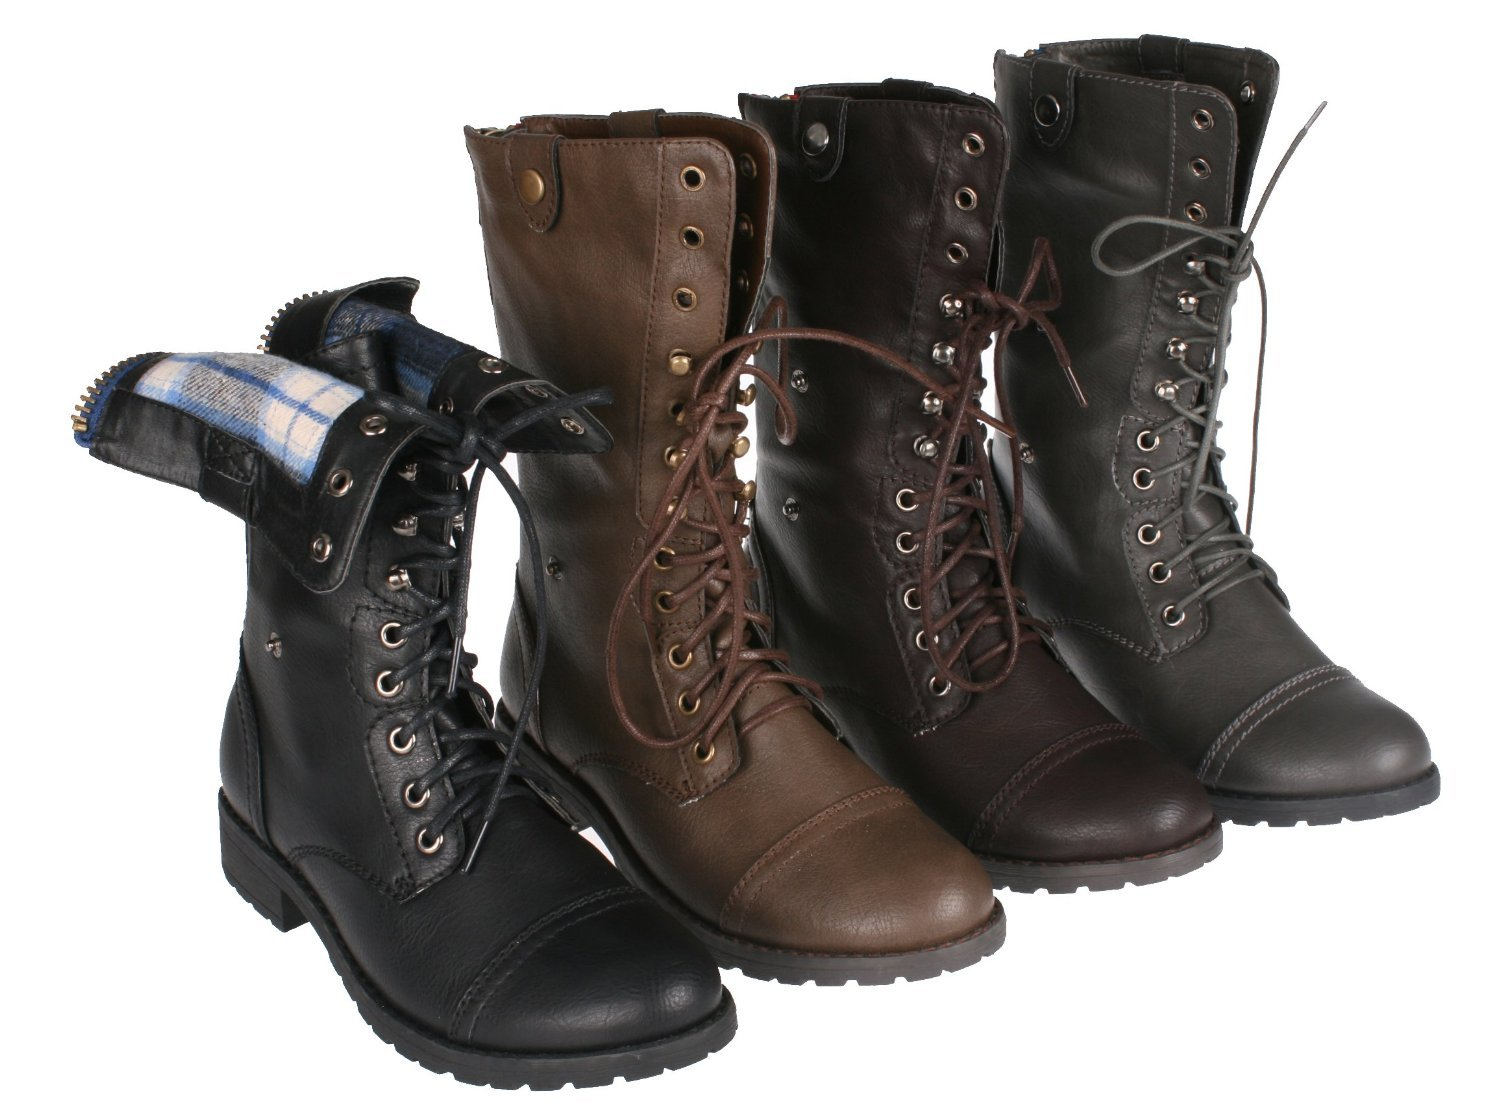 Womens Military Boots Gh8zULiu